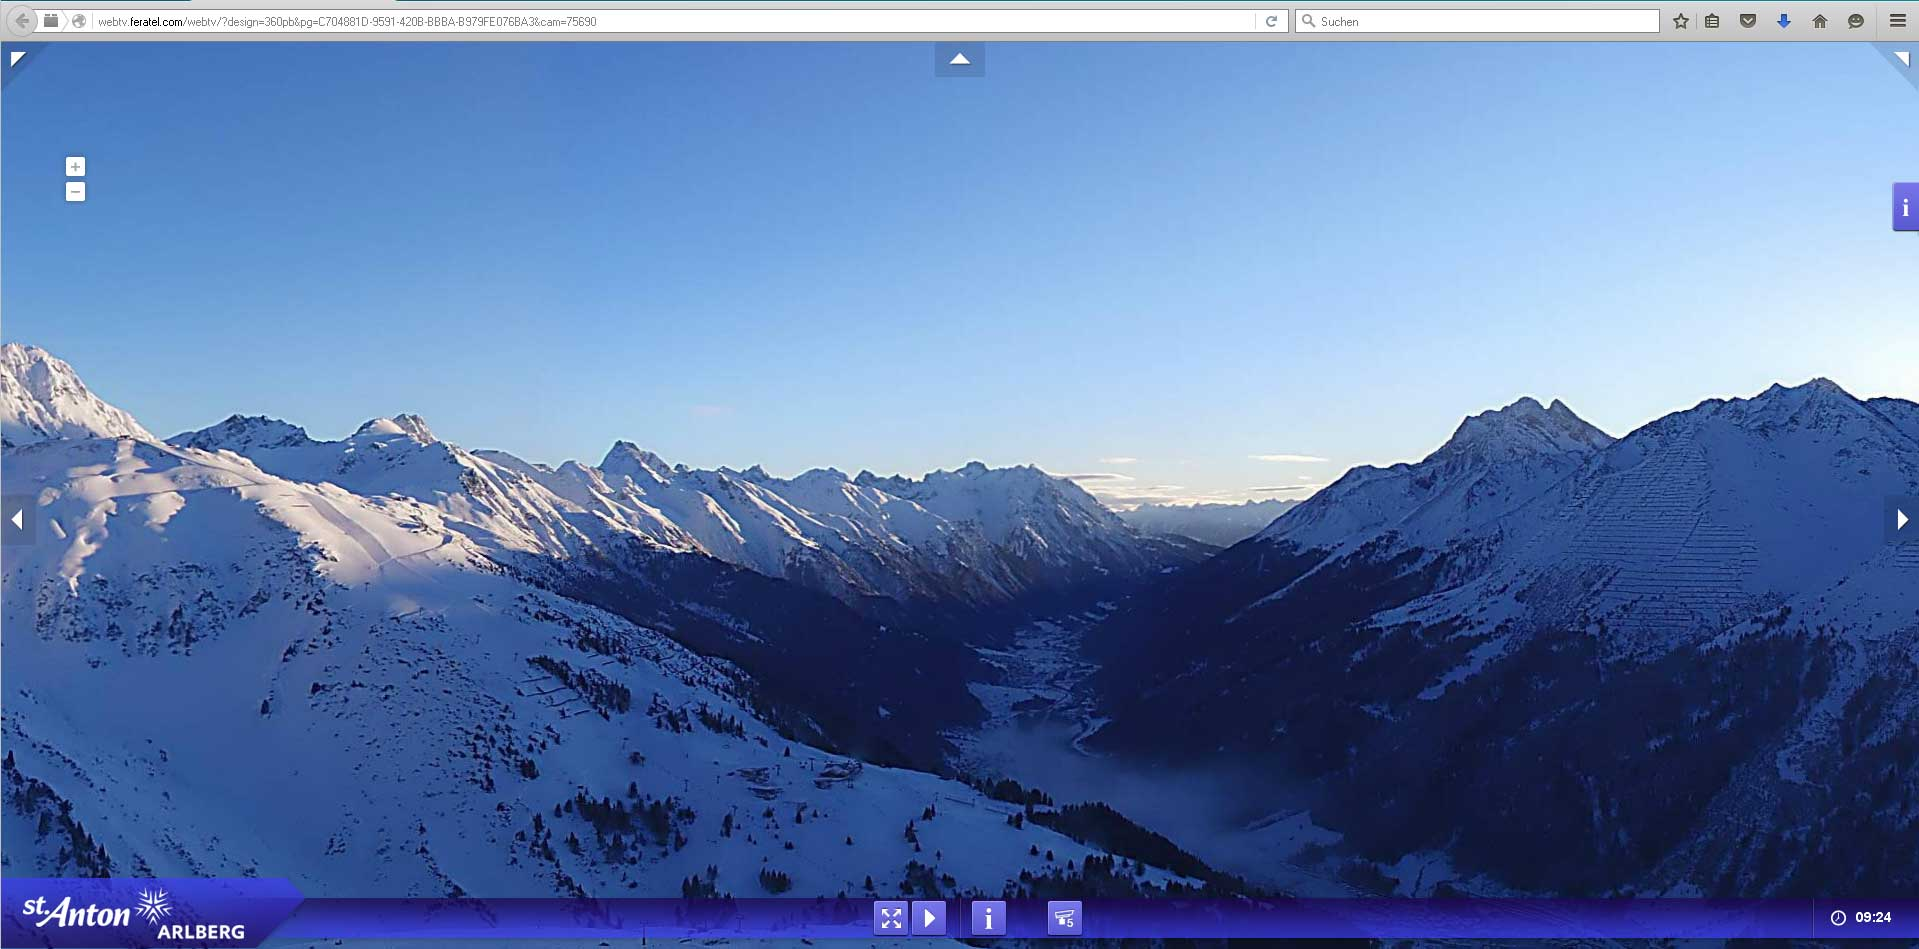 fliegende Webcam 330° St.Anton Arlberg